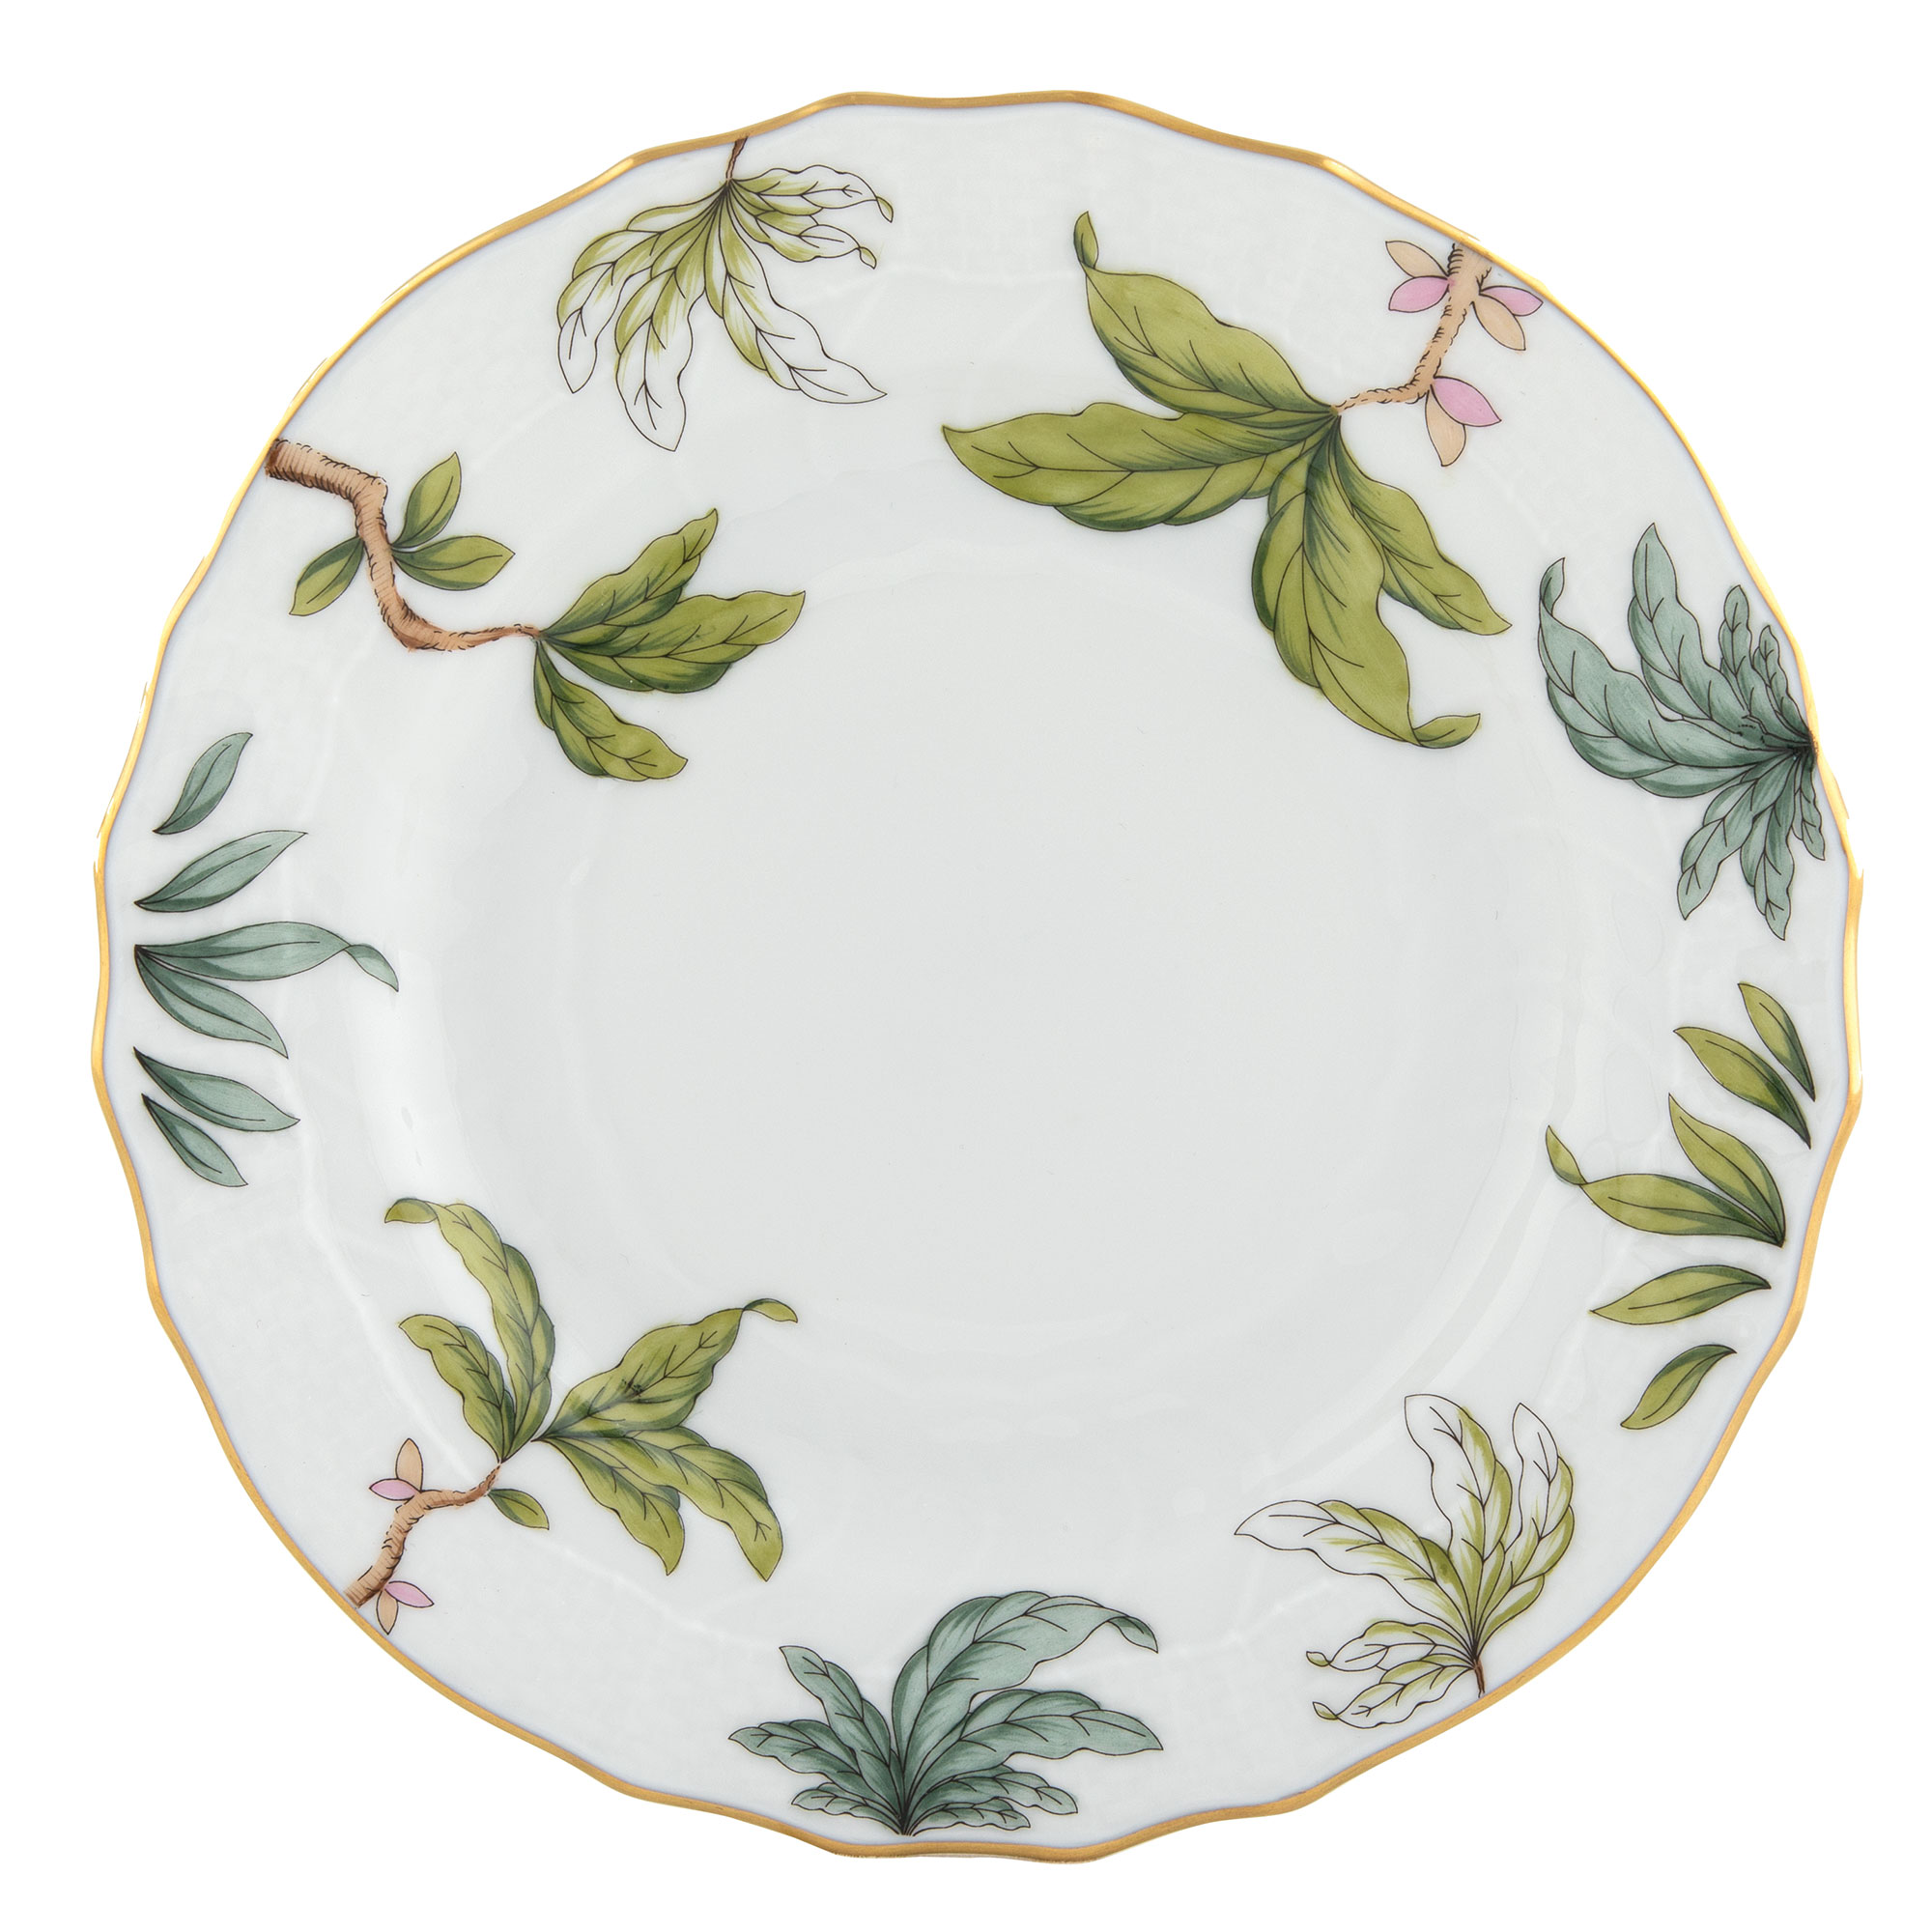 herend-foret-garland-bread-and-butter-plate-6-in-foretg01515-0-00.jpg